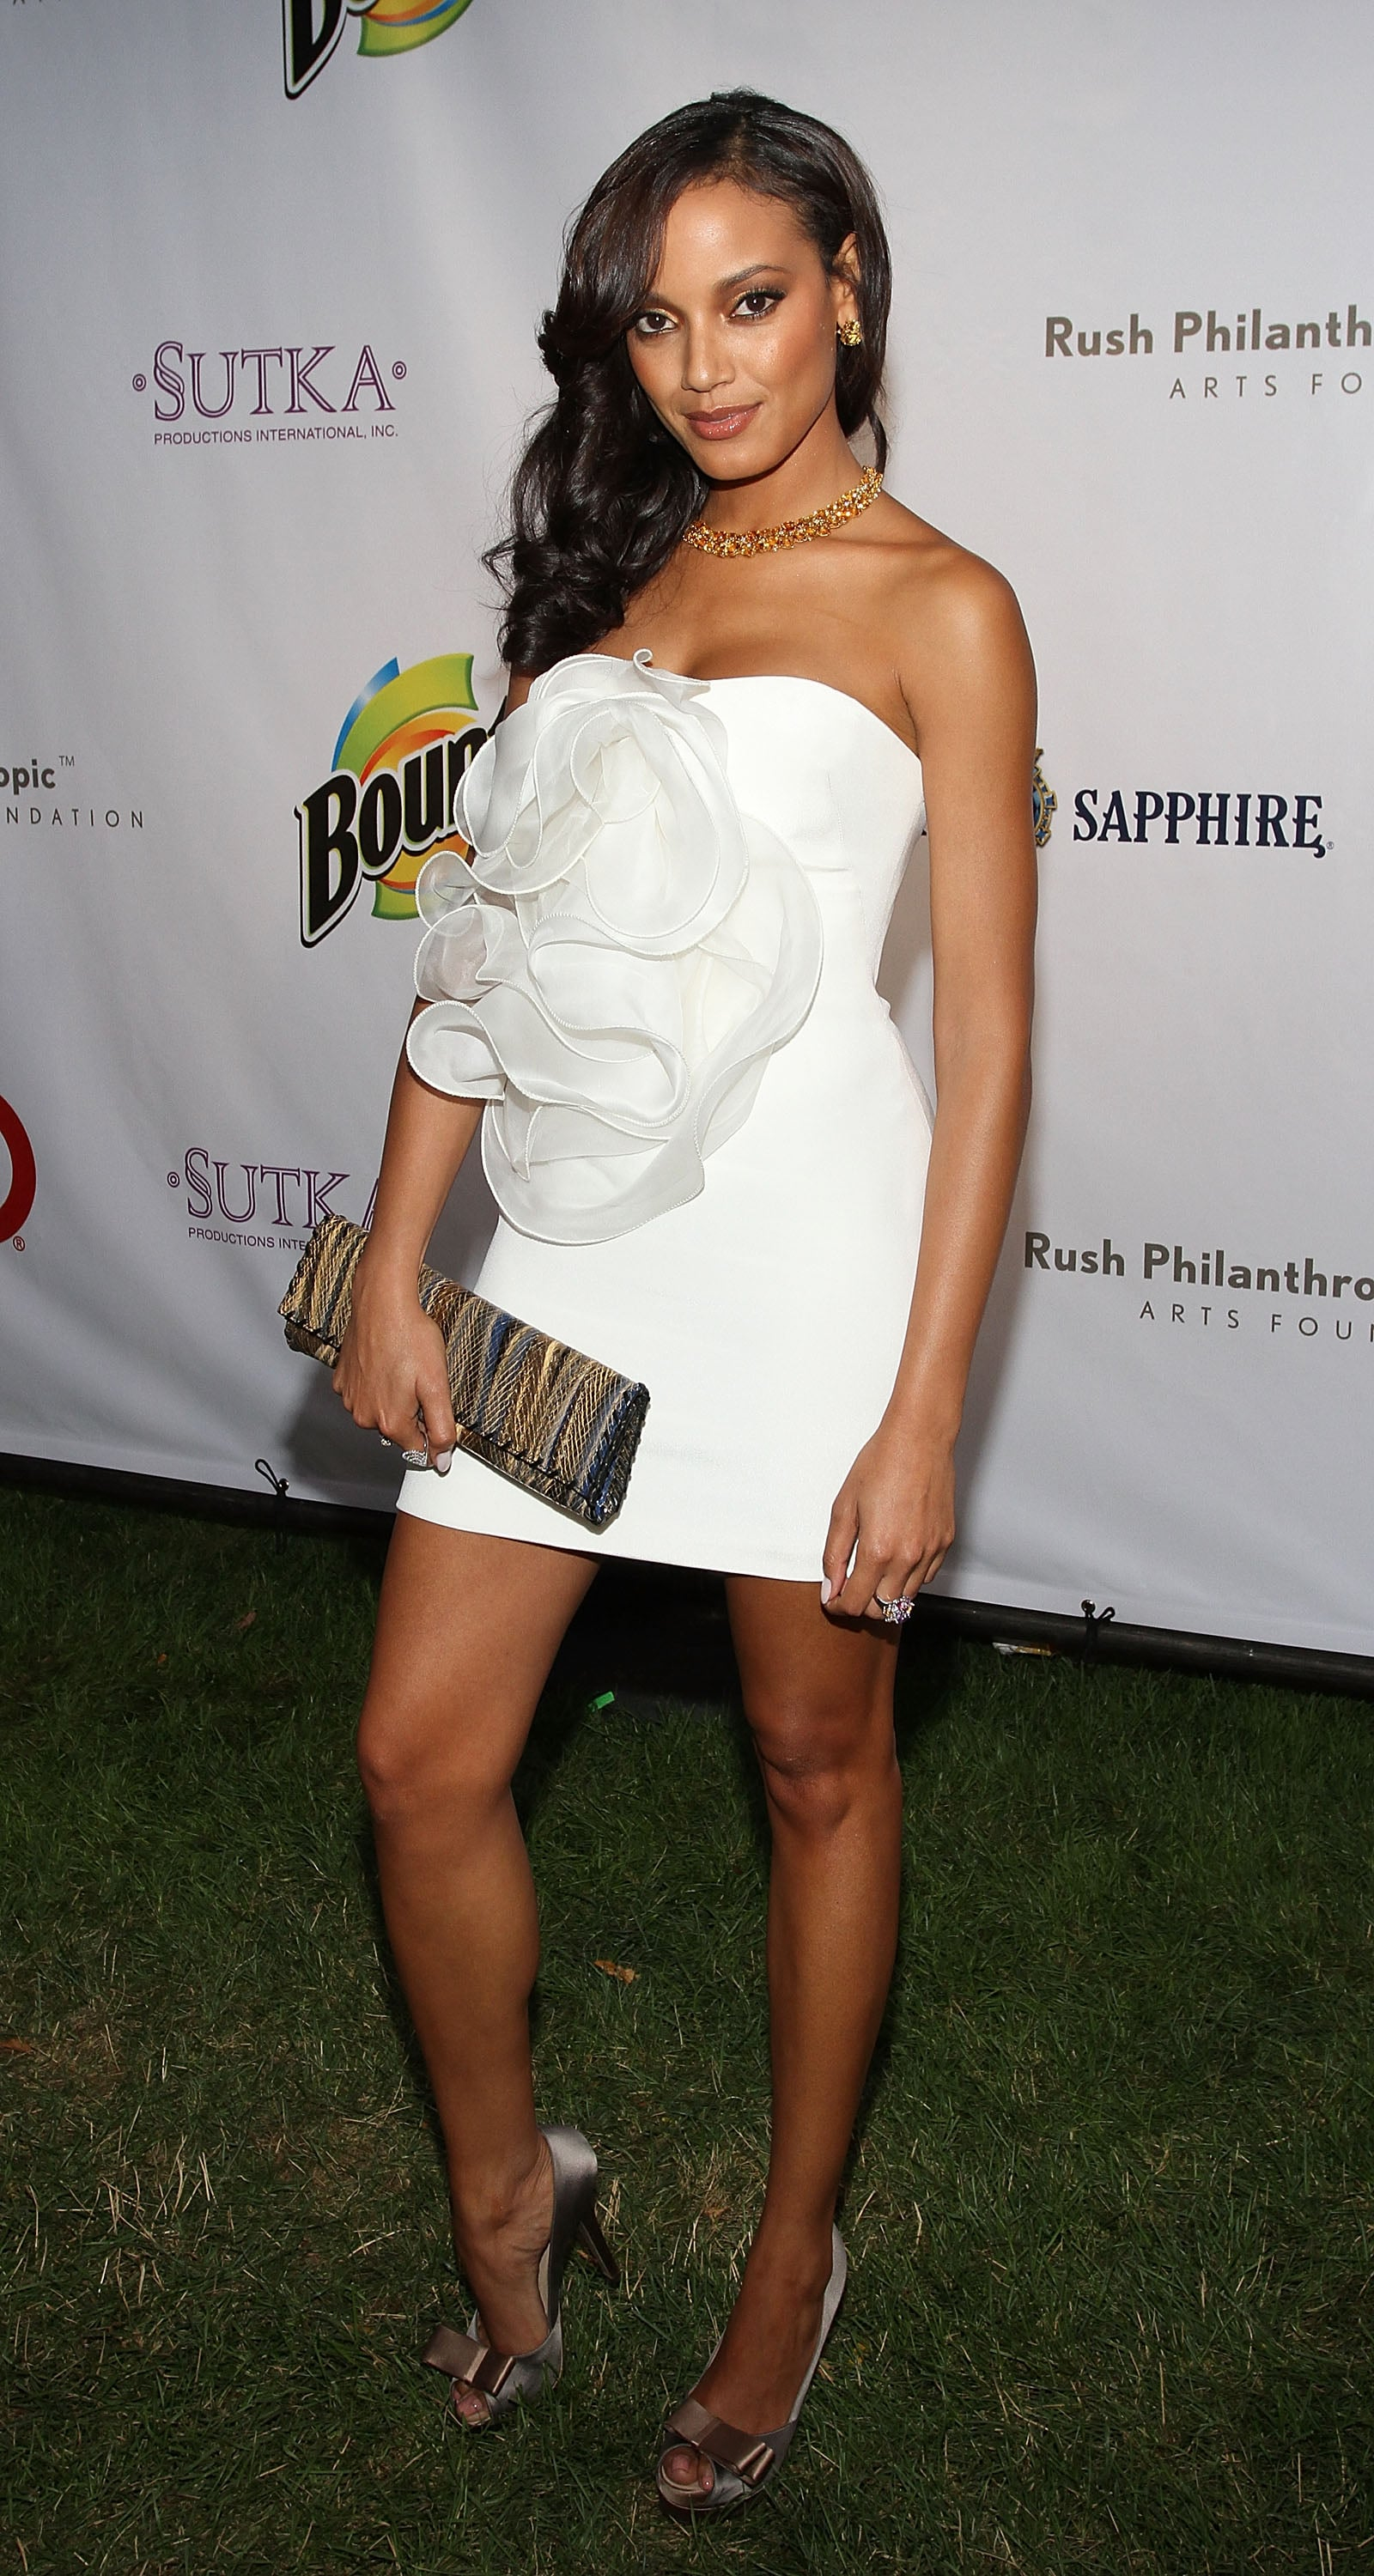 Selita works it in a LWD with a standout rosette detail at an event in the Hamptons.